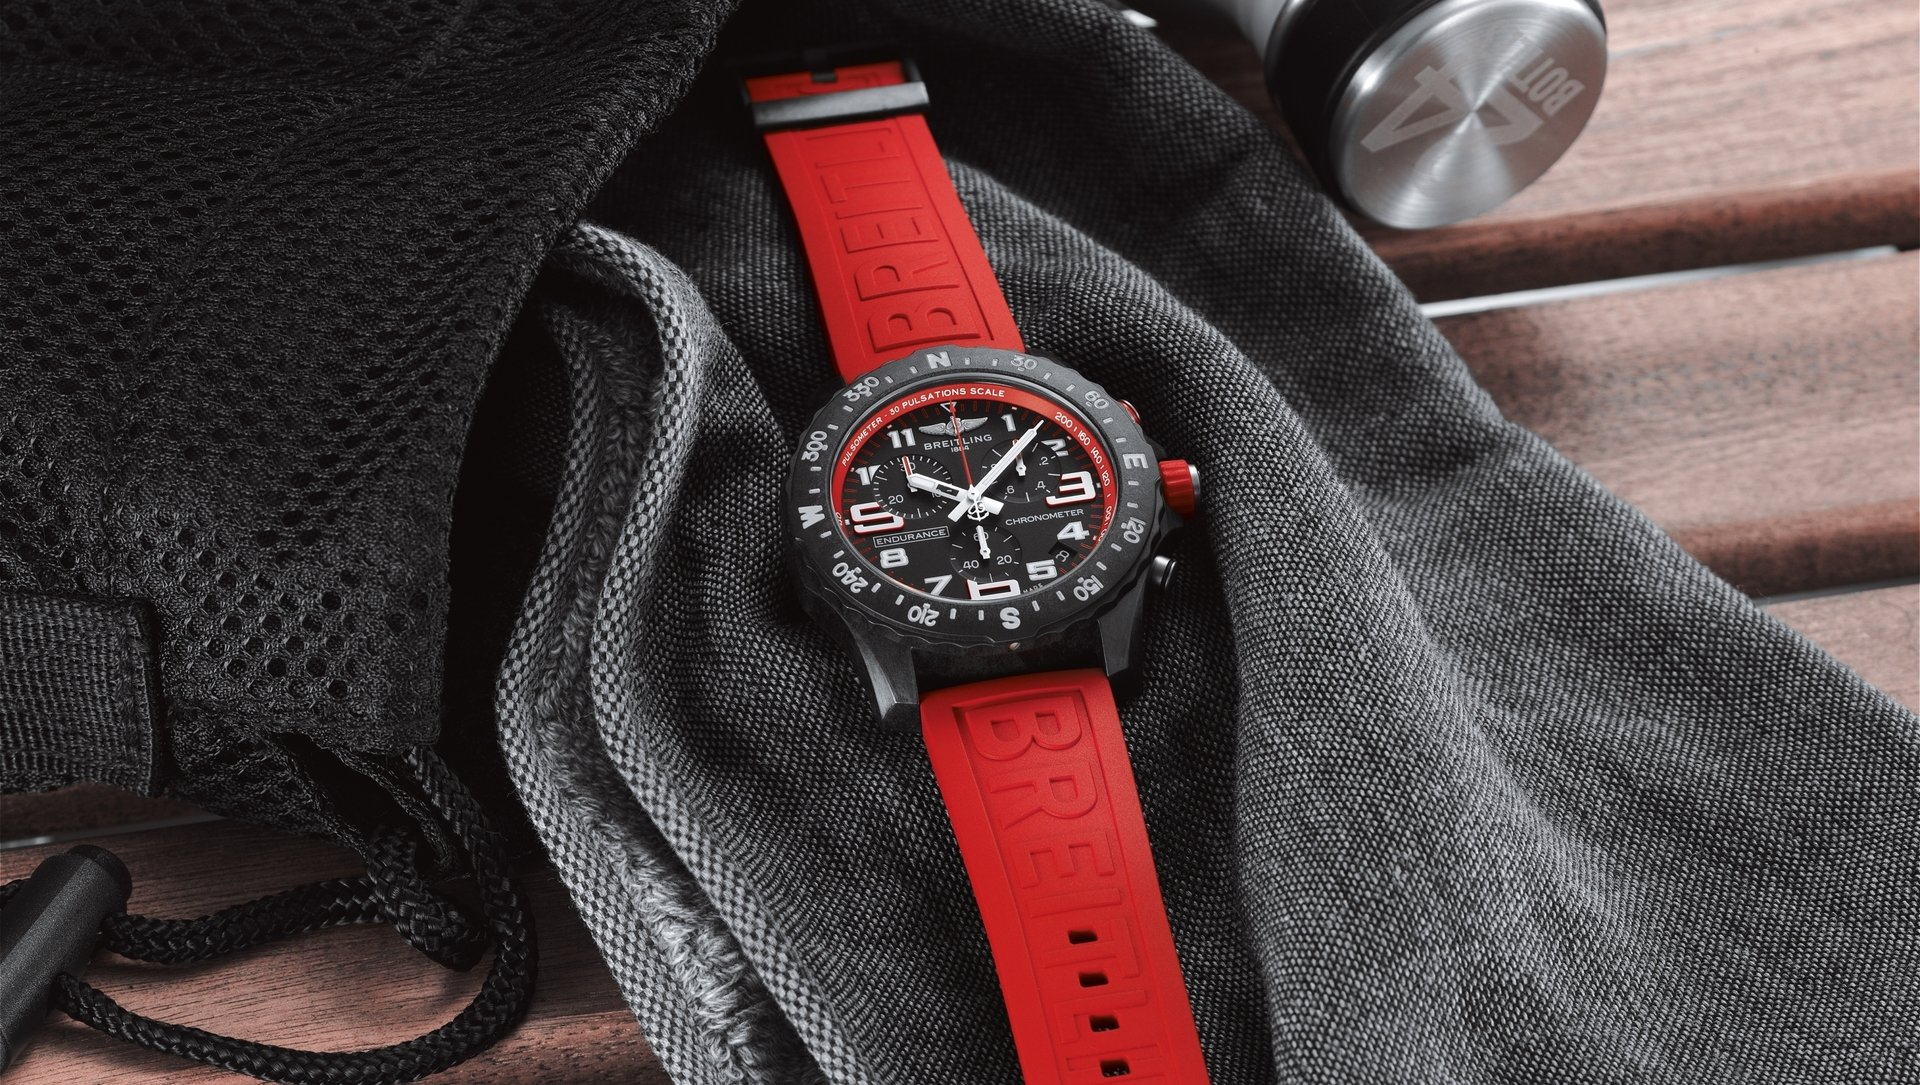 03_endurance-pro-with-a-red-inner-bezel-and-rubber-strap.jpg